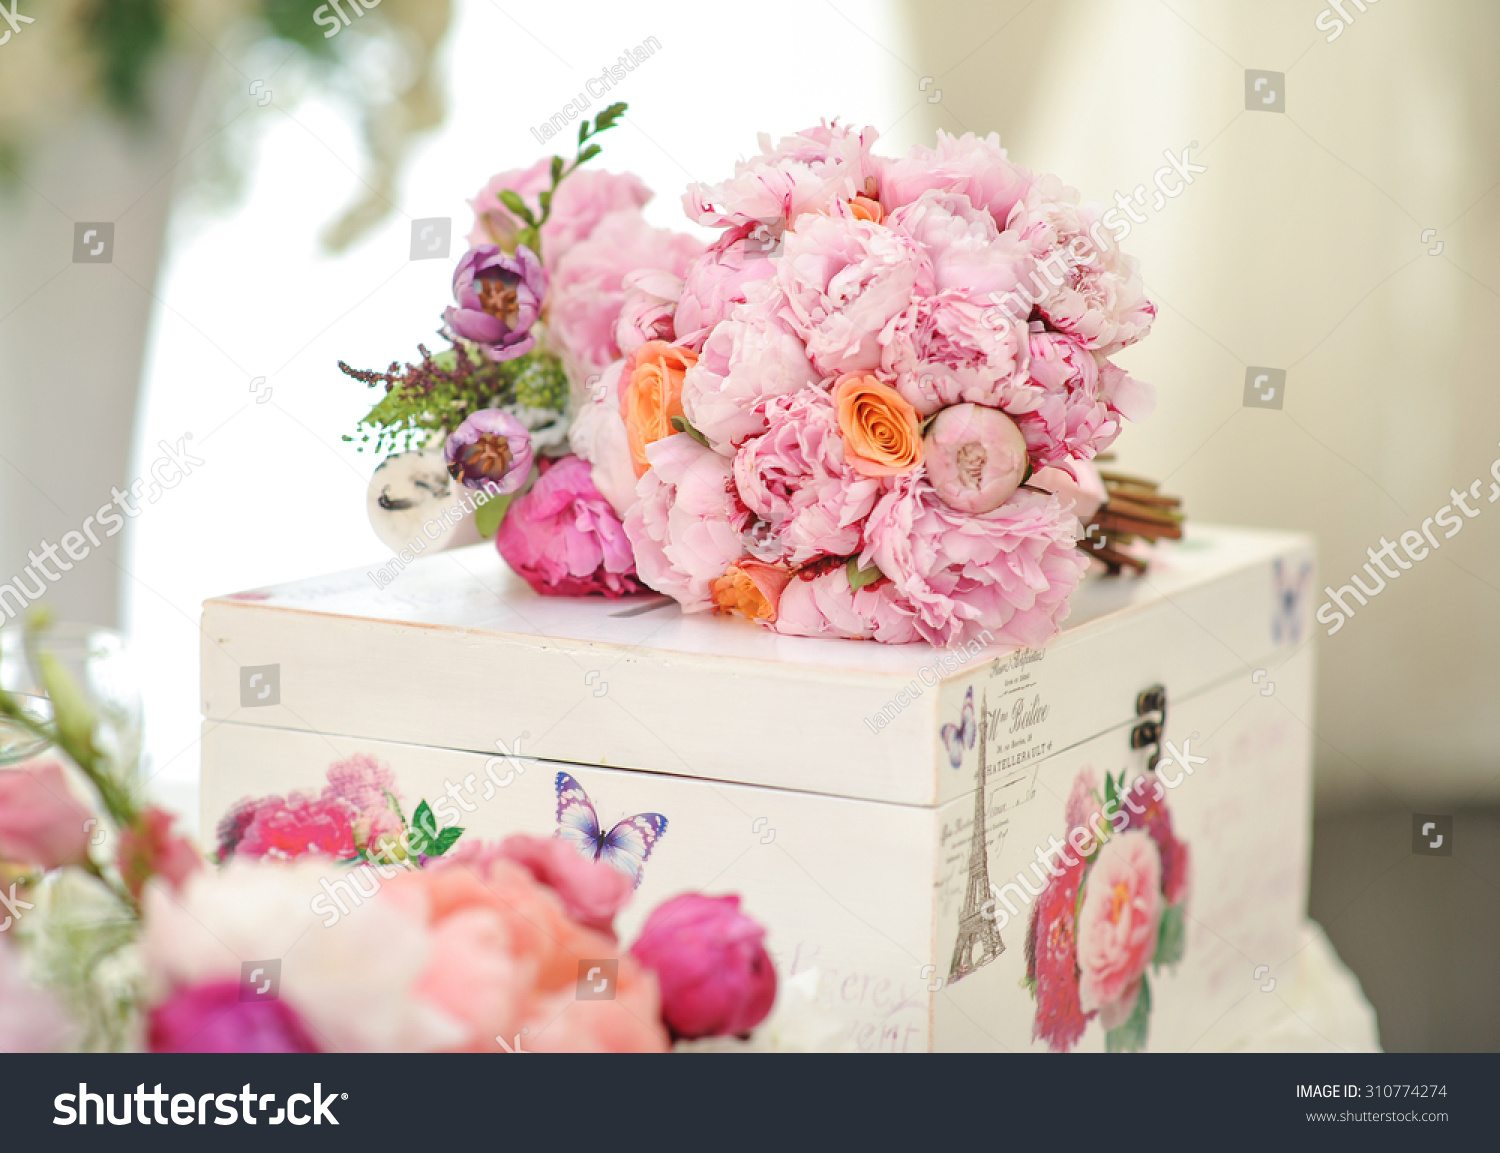 Royalty Free Wedding Decoration On Table Floral 310774274 Stock